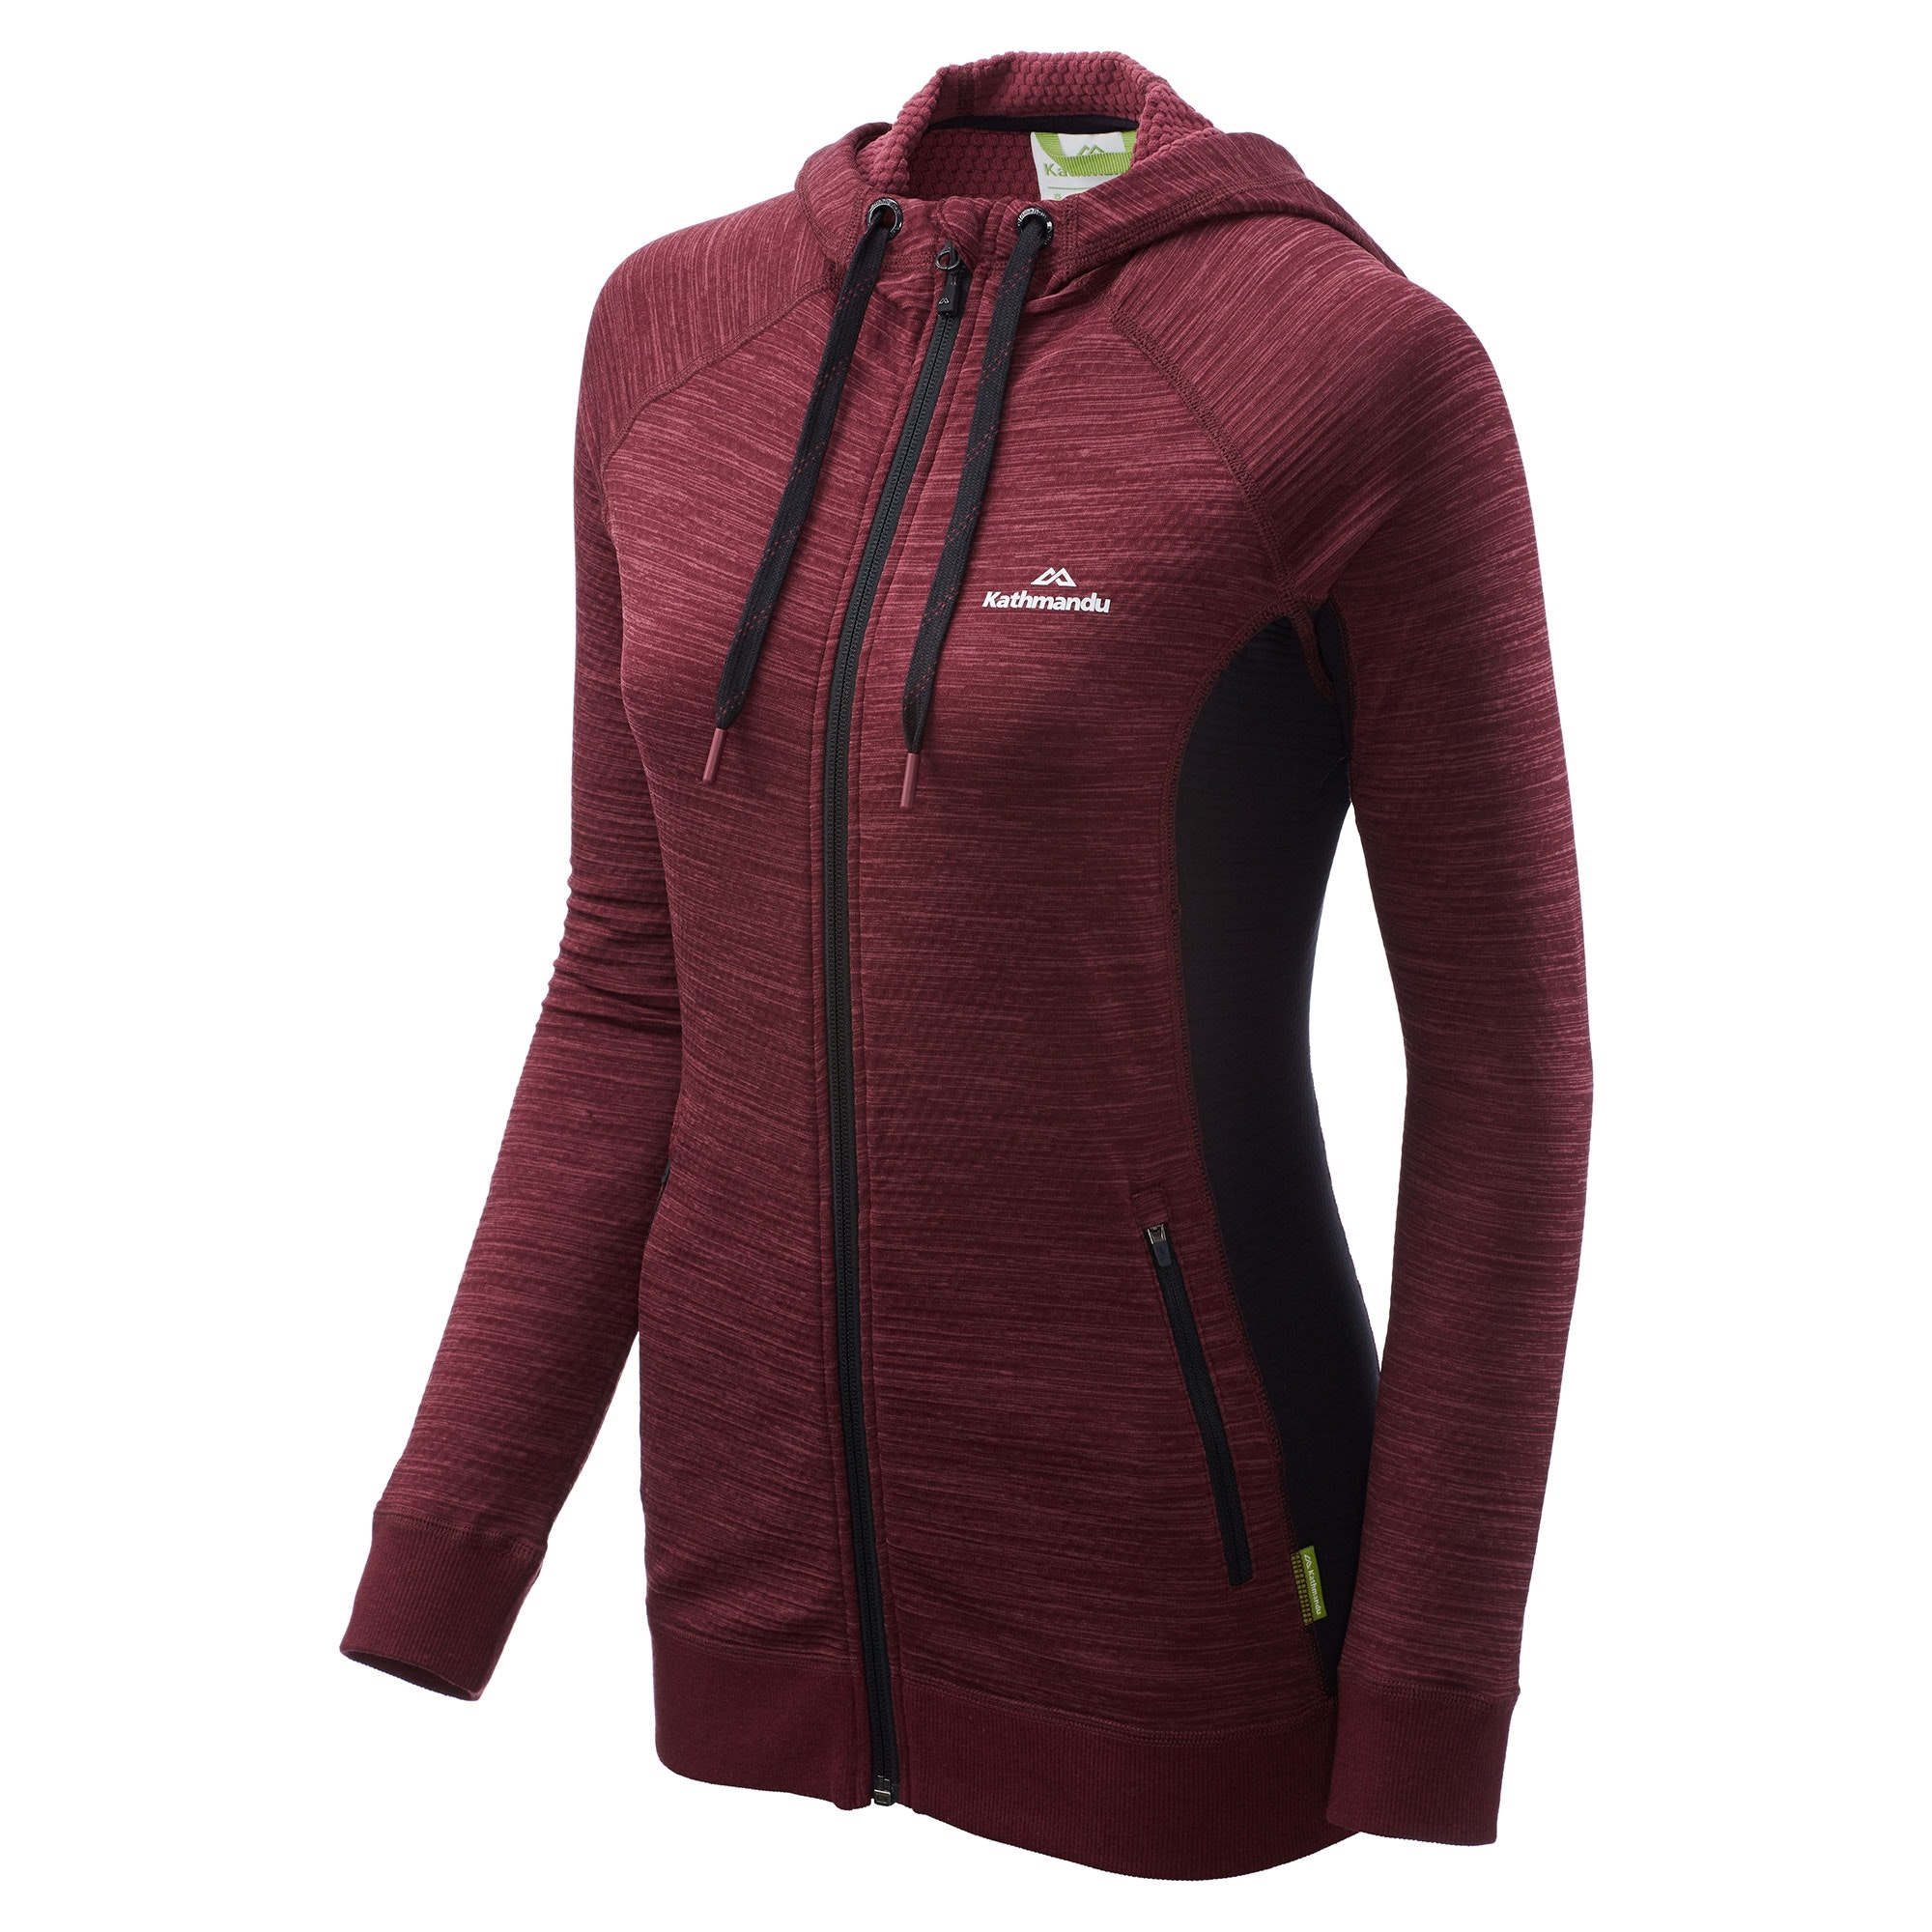 NEW-Kathmandu-Acota-Women-s-Hooded-Fleece-Lightweight-Breathable-Outdoor-Jacket thumbnail 18